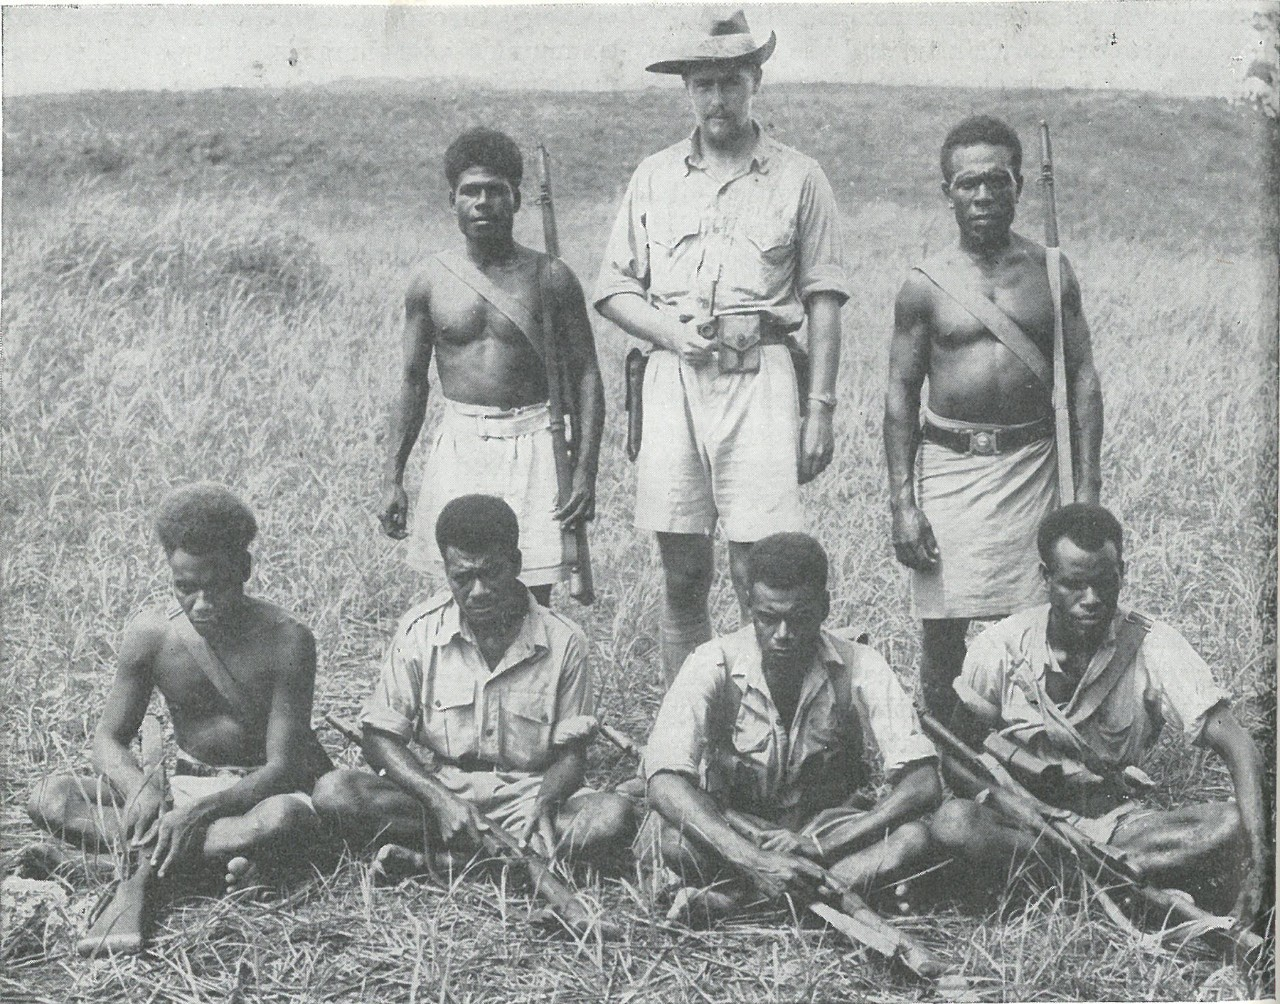 LOYAL NATIVES such as these, together with their leader, Captain Martin Clemens, Australian government representative on Guadalcanal (even while in Japanese hands) rendered invaluable services to the Marines. These natives were all members of the Solomon Islands police force.